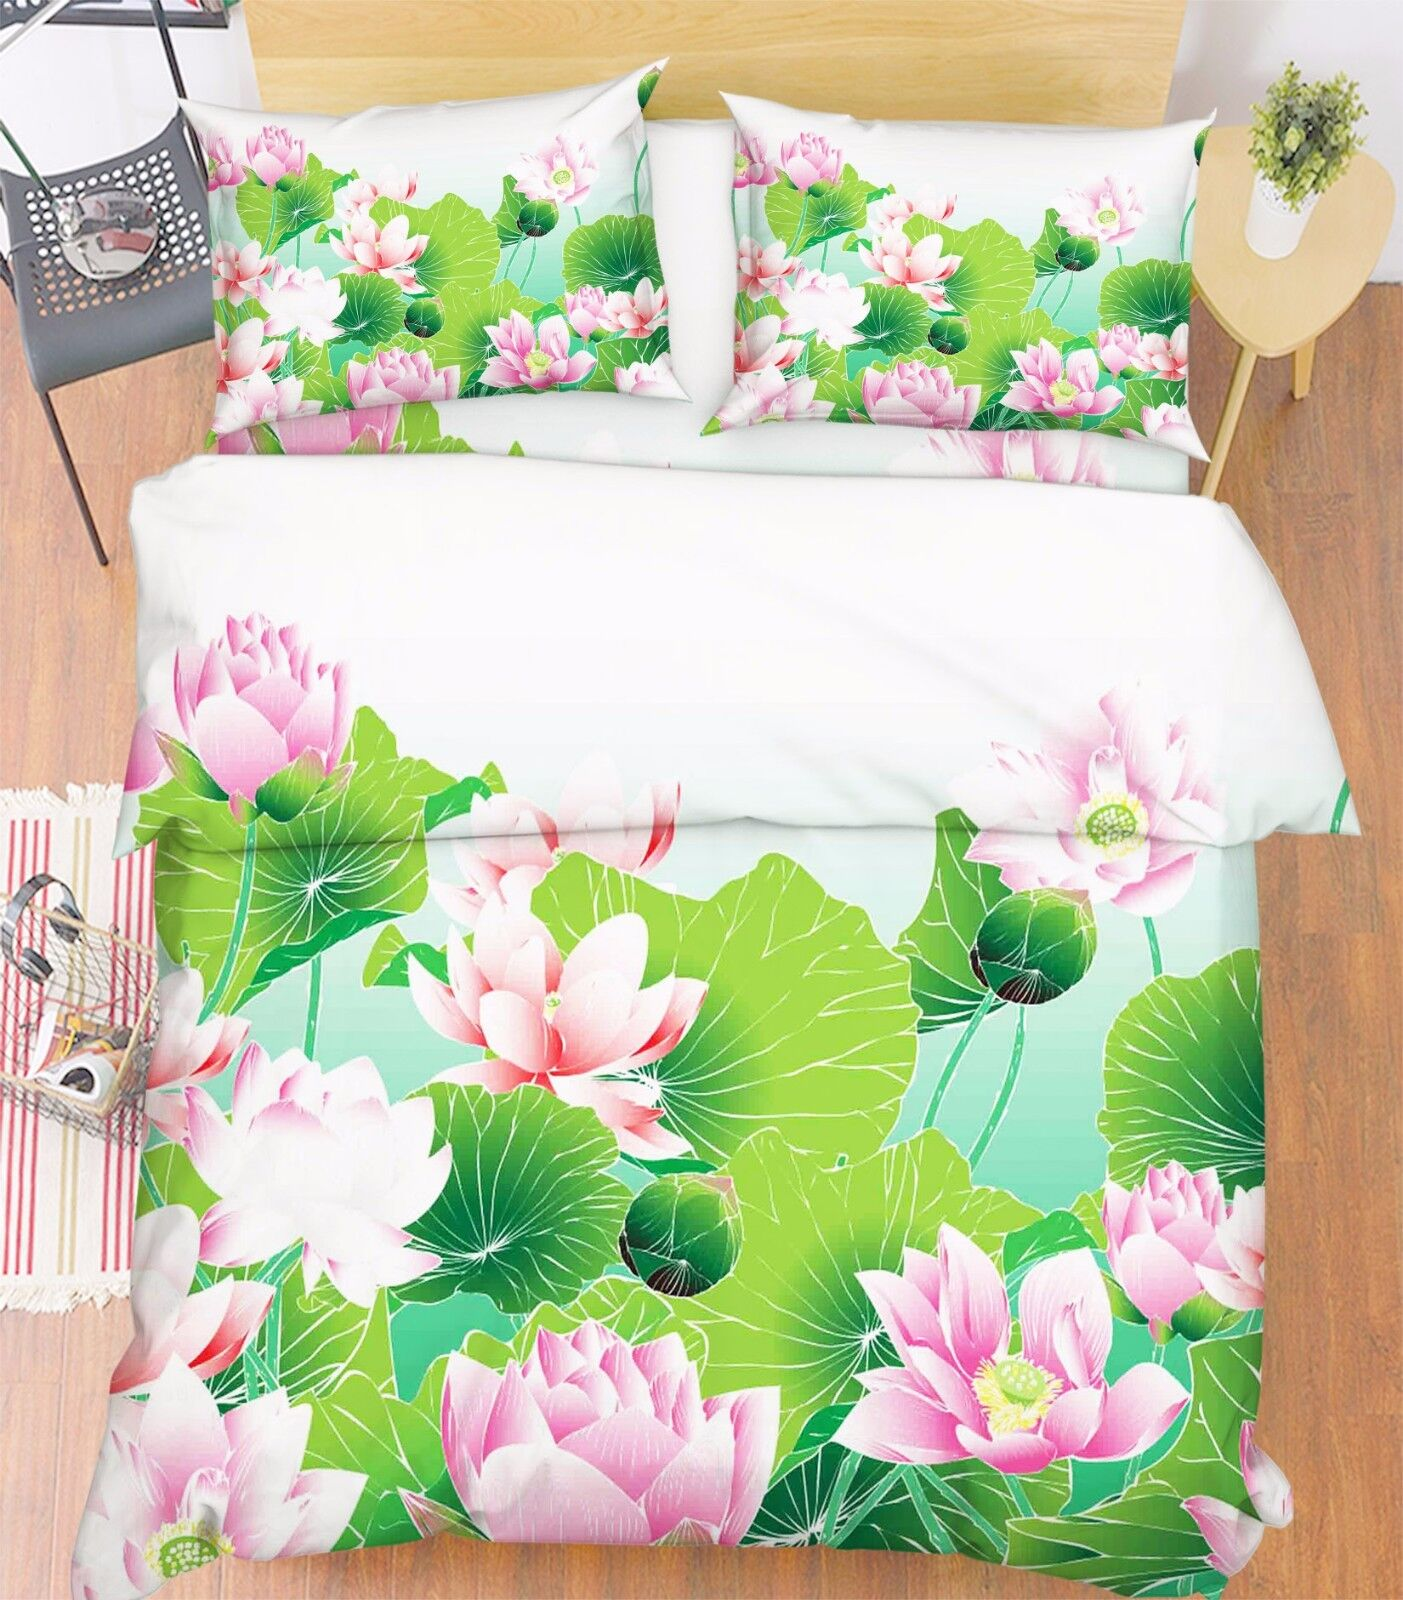 3D Lotus Pool 886 Bed Pillowcases Quilt Duvet Cover Set Single Queen UK Kyra